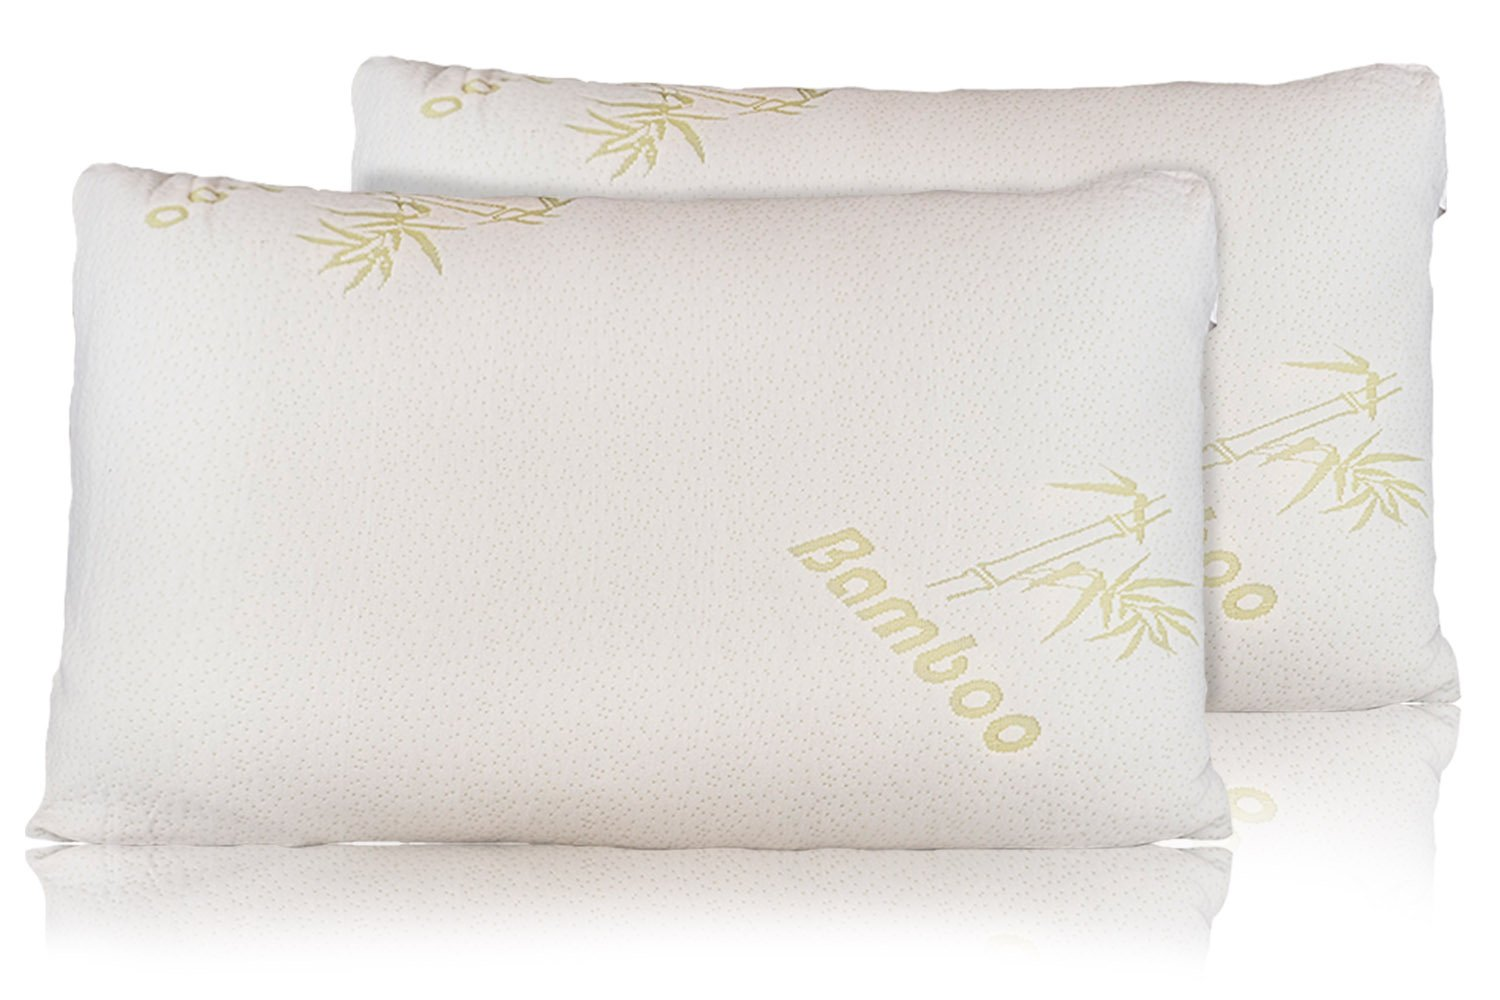 Bamboo Pillow - Firm Shredded Memory Foam Set of 2 - Stay Cool Removable Cover With Zipper - Hotel Quality Hypoallergenic - Relieves Snoring, Insomnia, Neck Pain, TMJ, and Migraines (Queen)